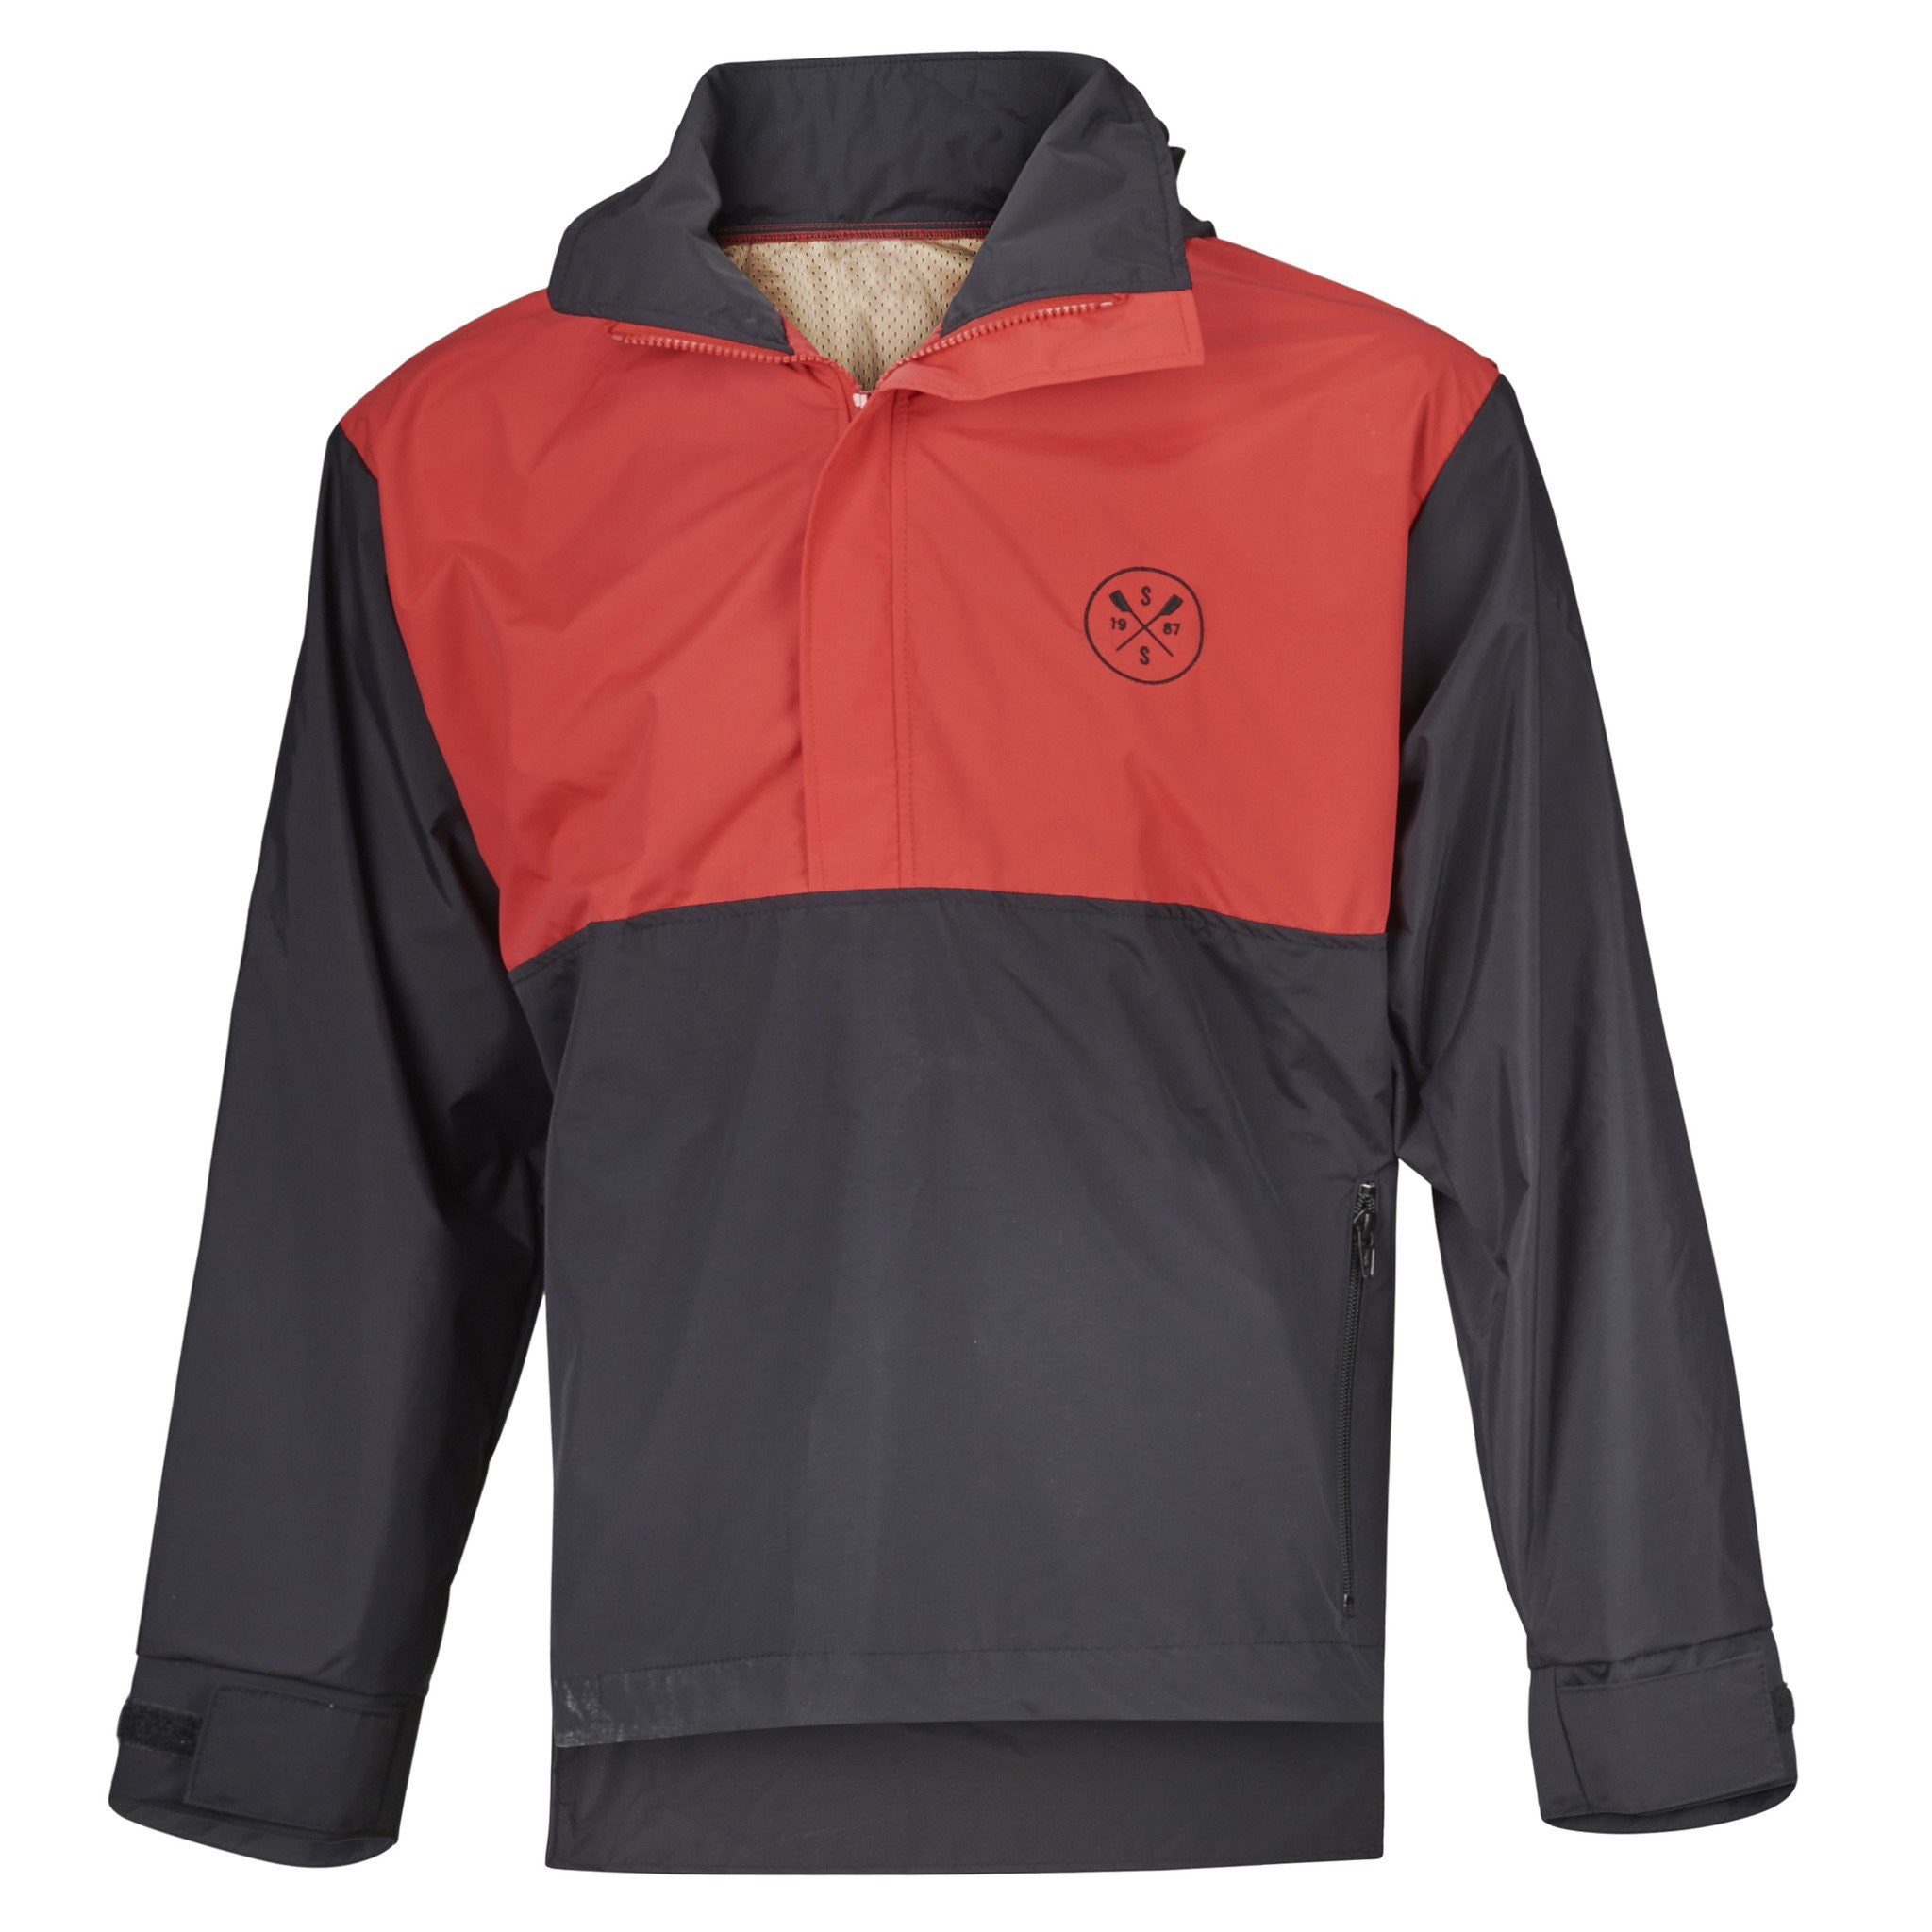 SxS Performance Jacket Hydrotex (Black/Red)